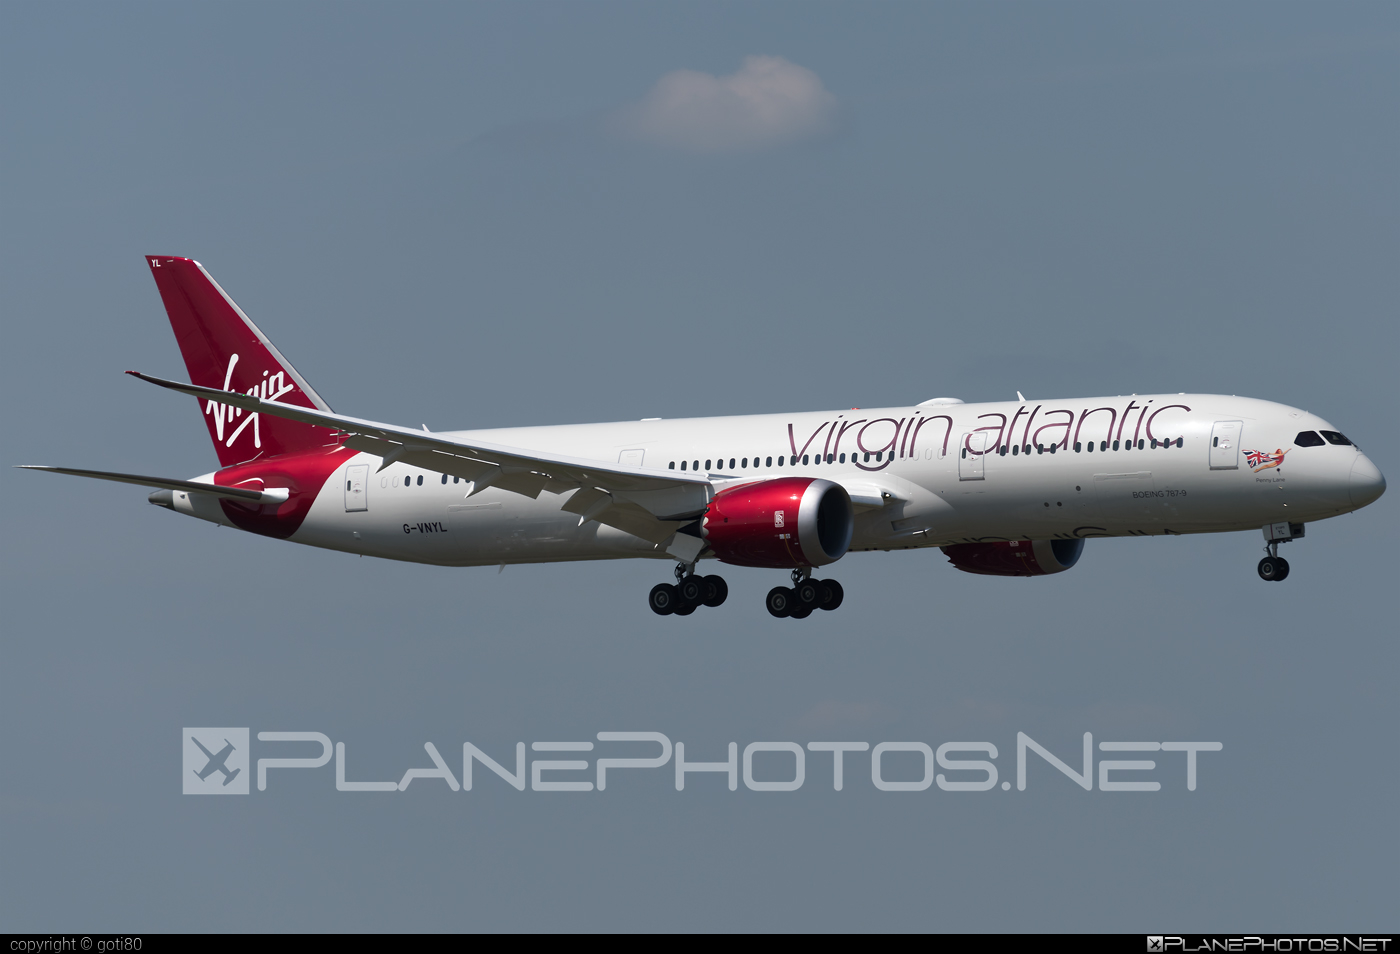 Boeing 787-9 Dreamliner - G-VNYL operated by Virgin Atlantic Airways #b787 #boeing #boeing787 #dreamliner #virginatlantic #virginatlanticairways